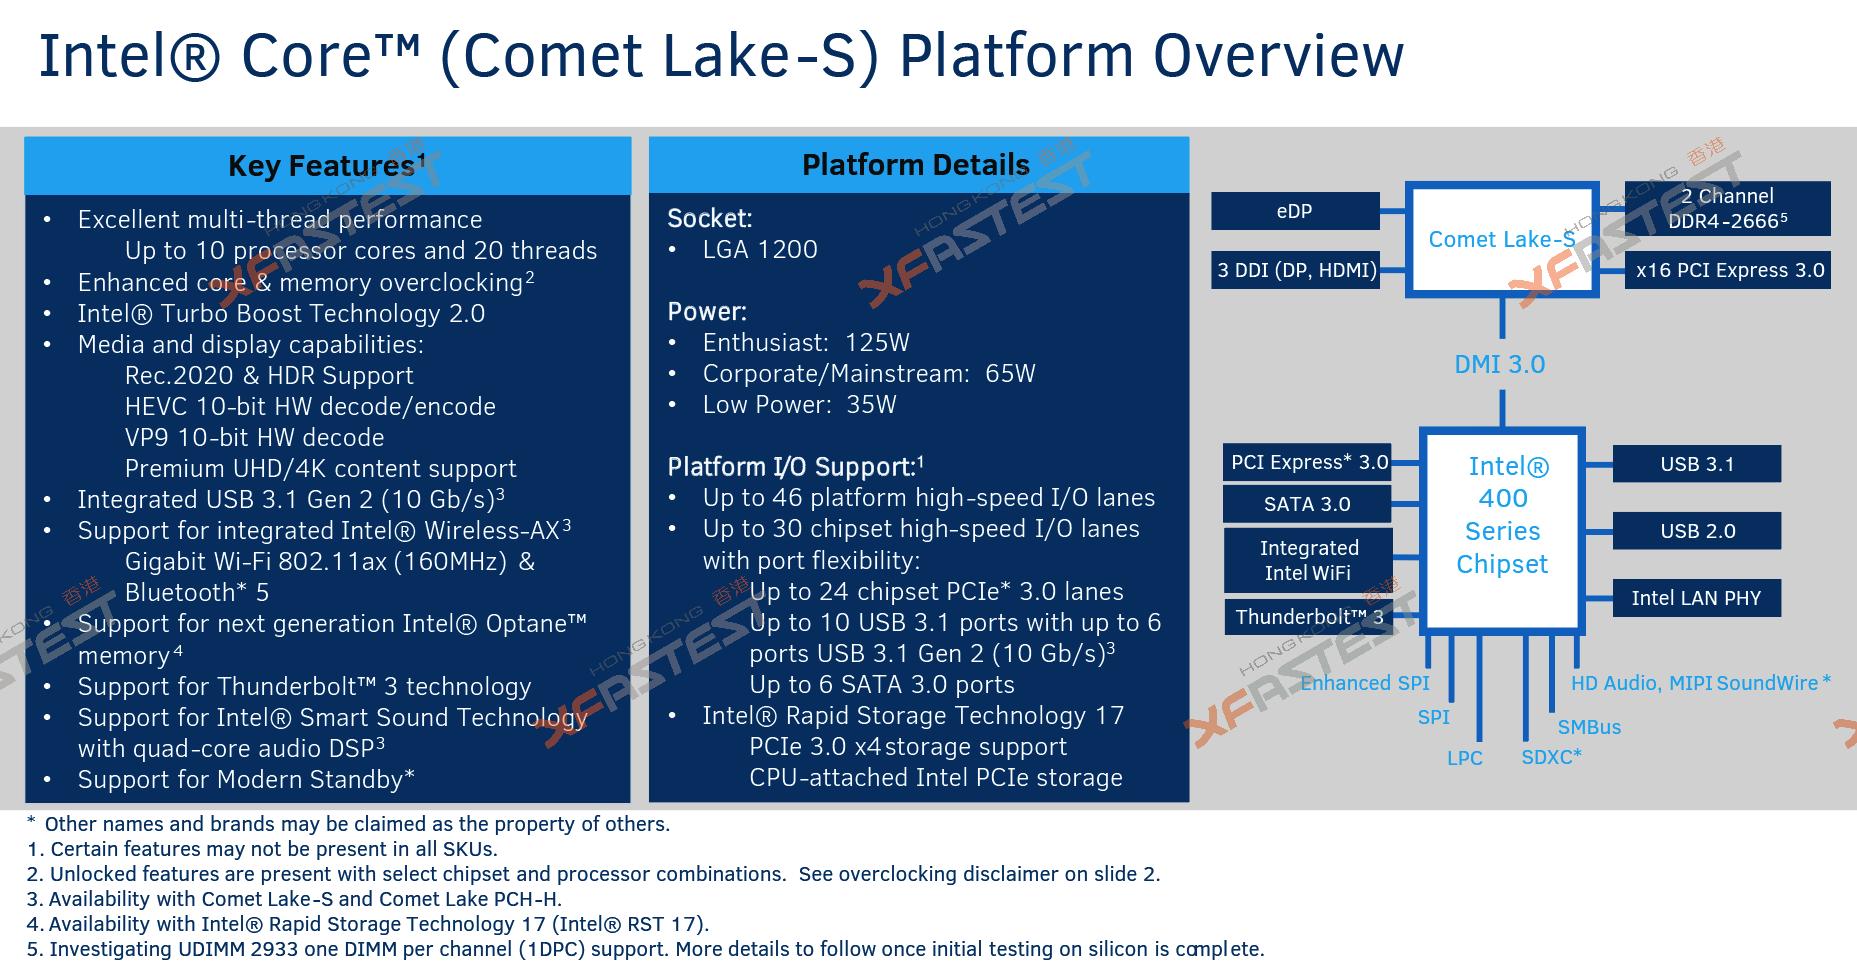 Intel Roadmap Leaked: Comet Lake S With 10 Cores In Early